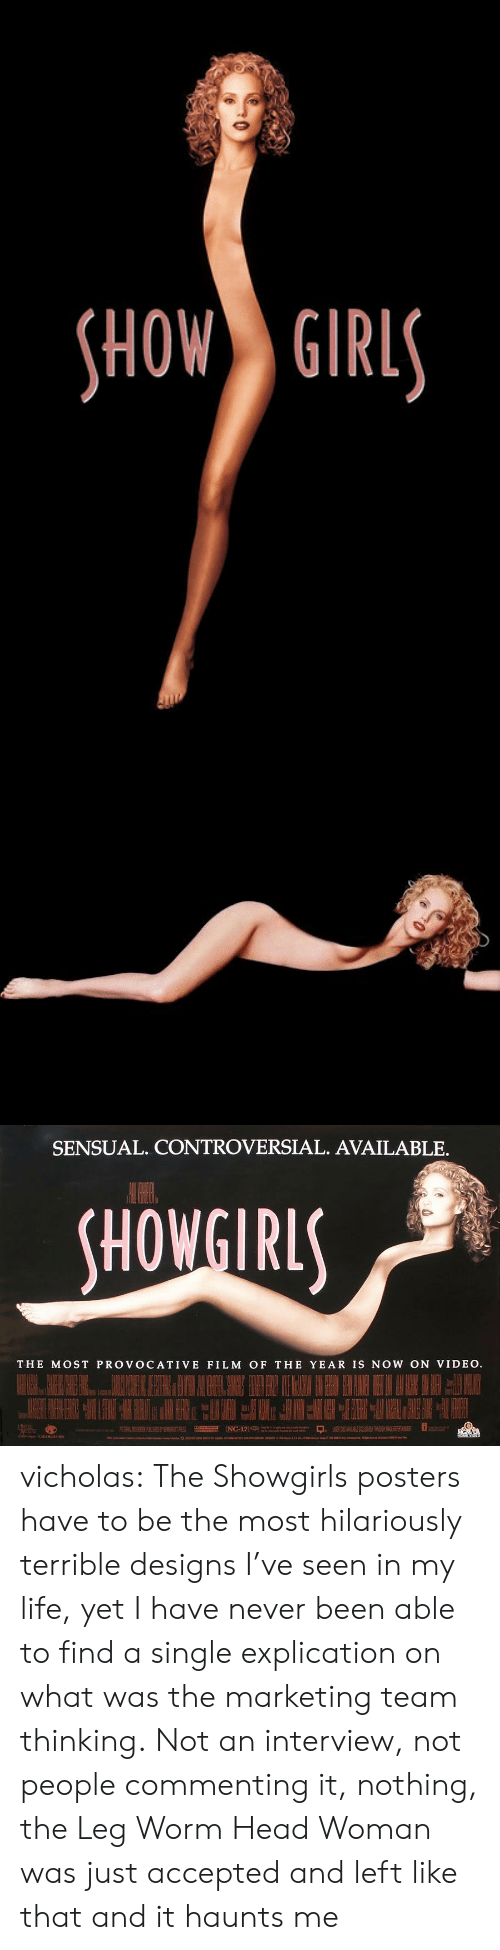 Head, Life, and Target: HOW GIRL   SENSUAL. CONTROVERSIAL. AVAILABLE.  HOWGIRL  THE MOST PROVOCATIVE FILM OF THE YEAR IS NOW ON VIDEO vicholas:  The Showgirls posters have to be the most hilariously terrible designs I've seen in my life, yet I have never been able to find a single explication on what was the marketing team thinking. Not an interview, not people commenting it, nothing, the Leg Worm Head Woman was just accepted and left like that and it haunts me